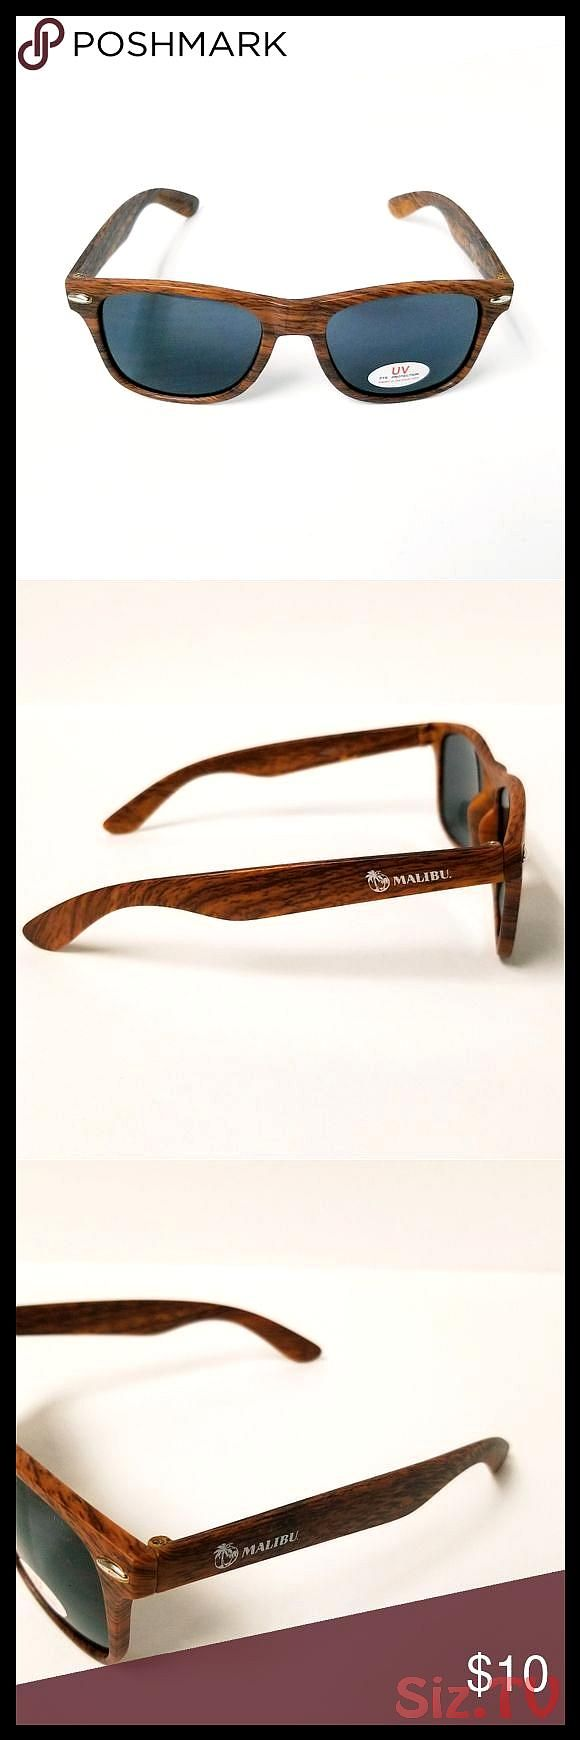 Malibu Sunglasses Brand new faux walnut colored wood grain UV glasses Great pair of unisex sunglasses No caseMultiple pairs available This listiMalibu Sunglasses Brand ne...